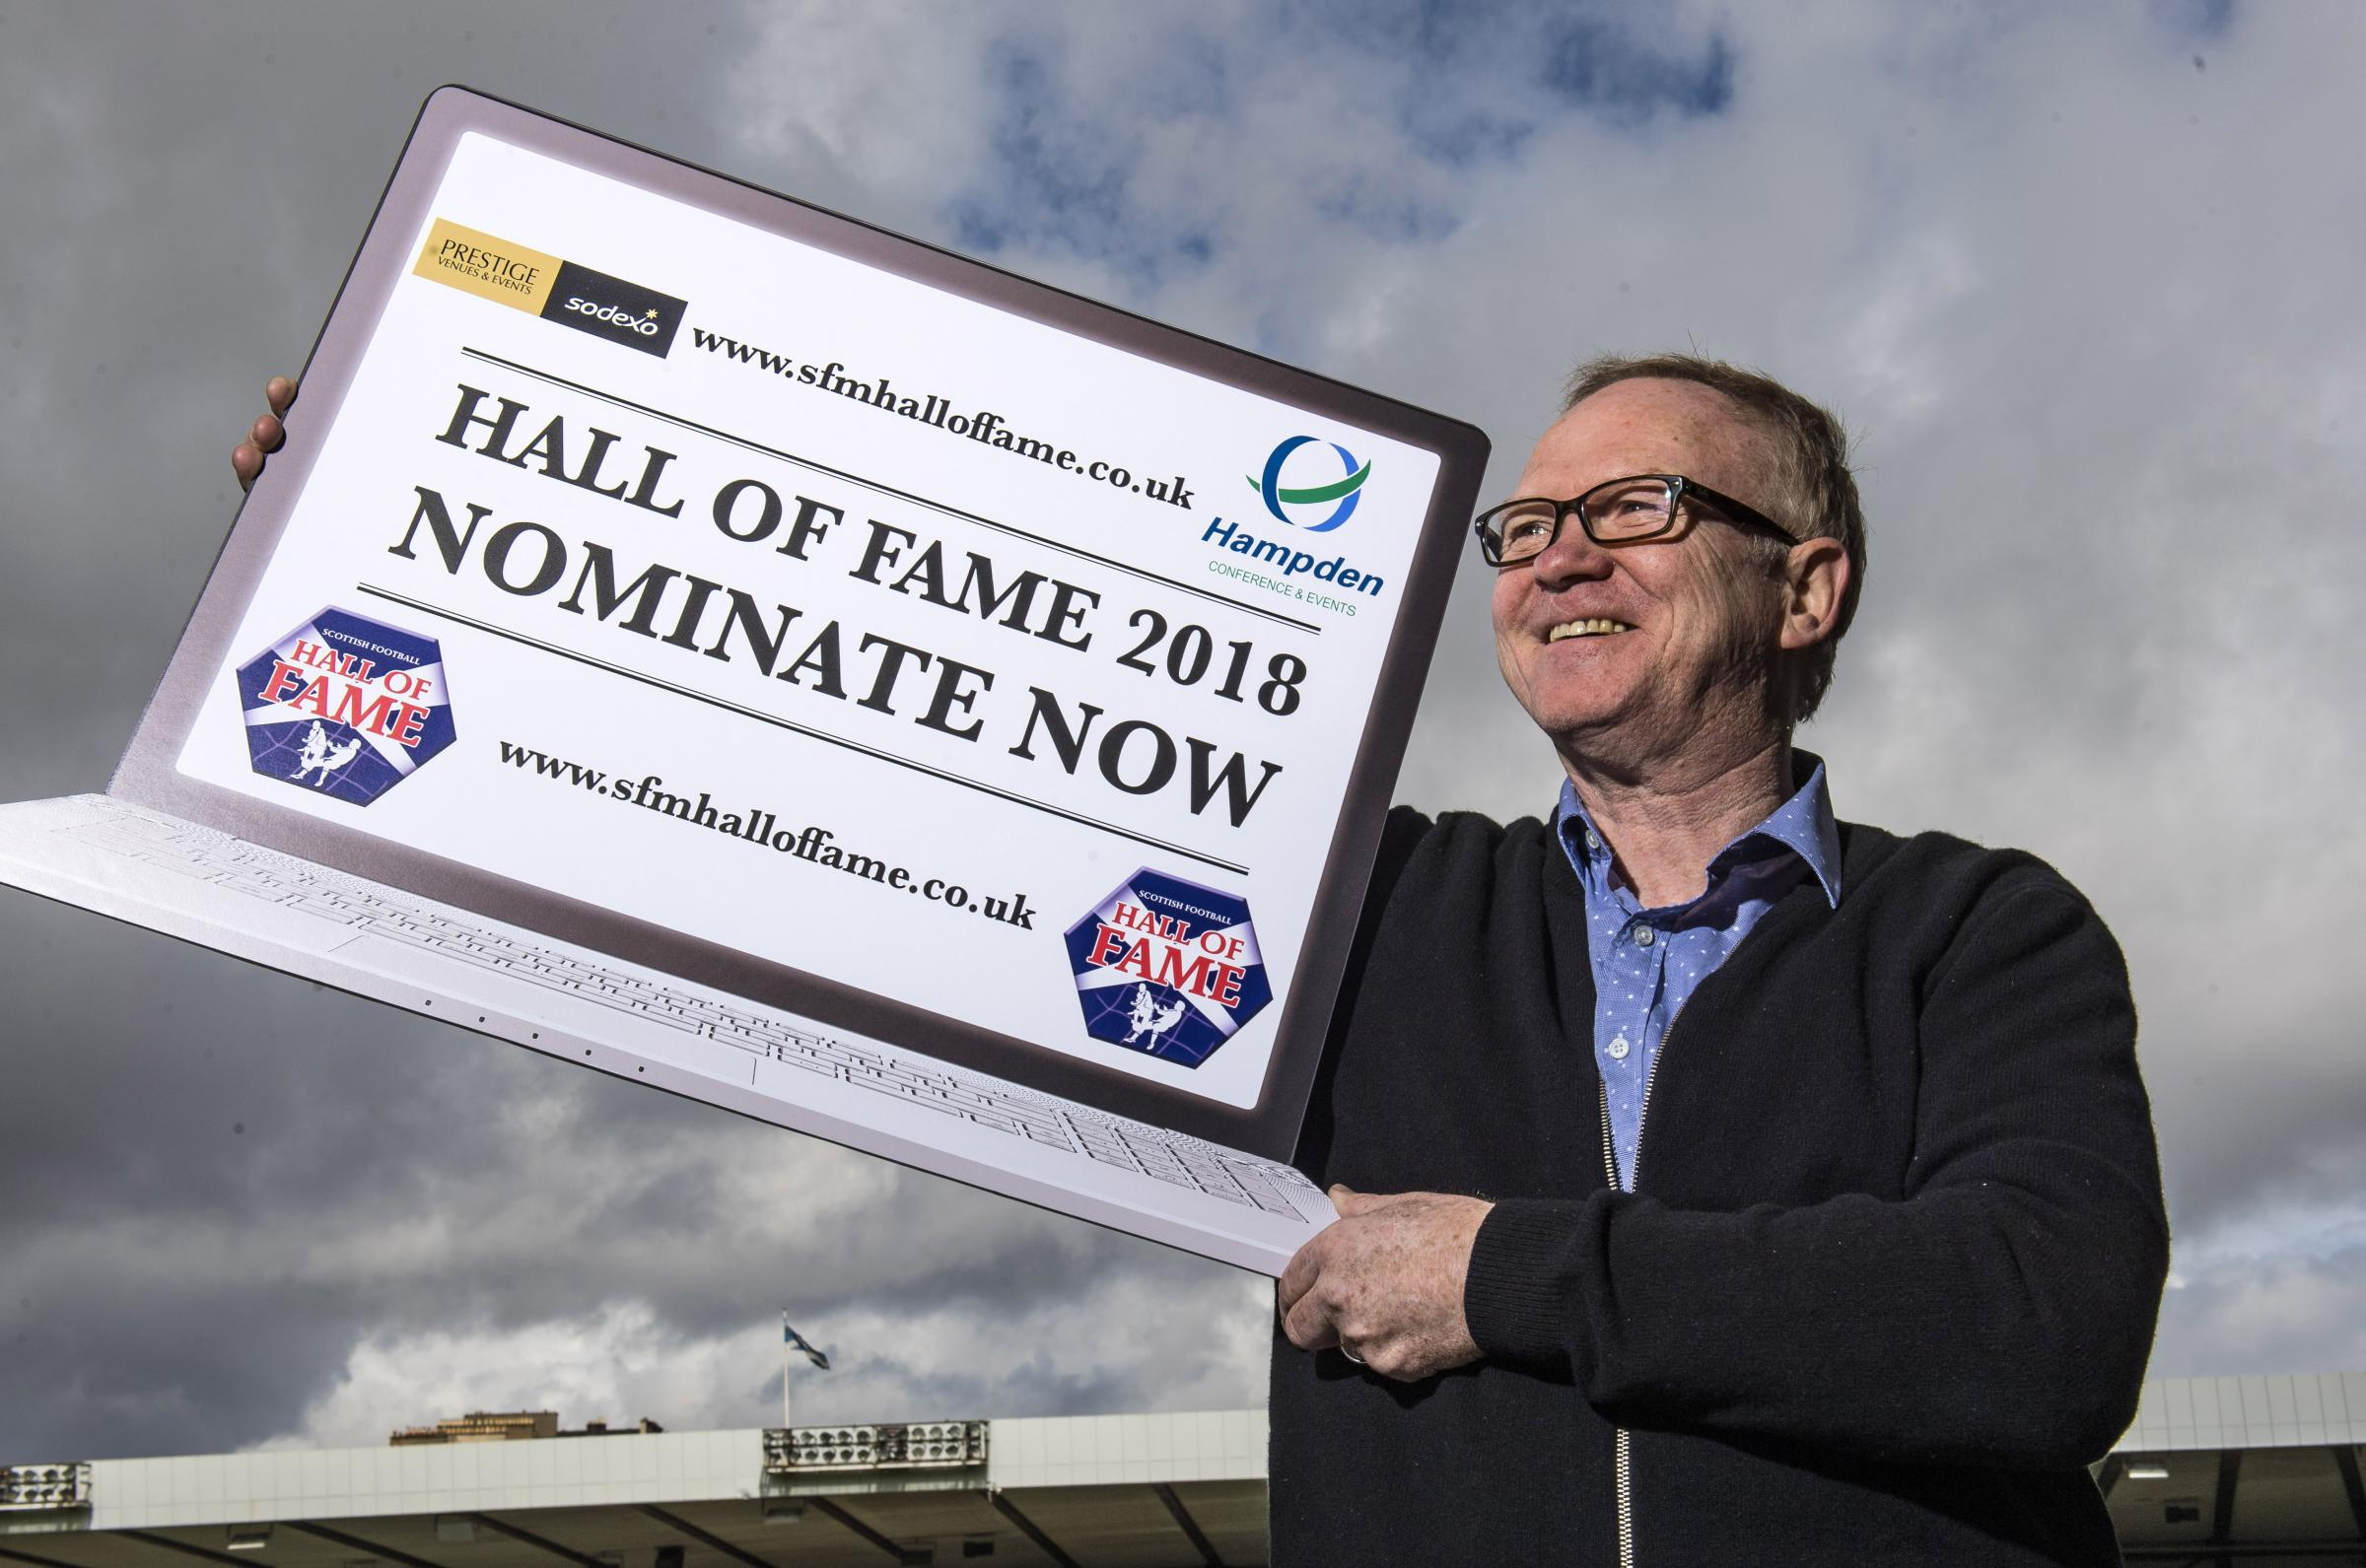 25/04/18 . HAMPDEN PARK - GLASGOW . Scotland manager Alex McLeish is on hand to promote the Hall of Fame 2018 Dinner on Sunday 21st of October.